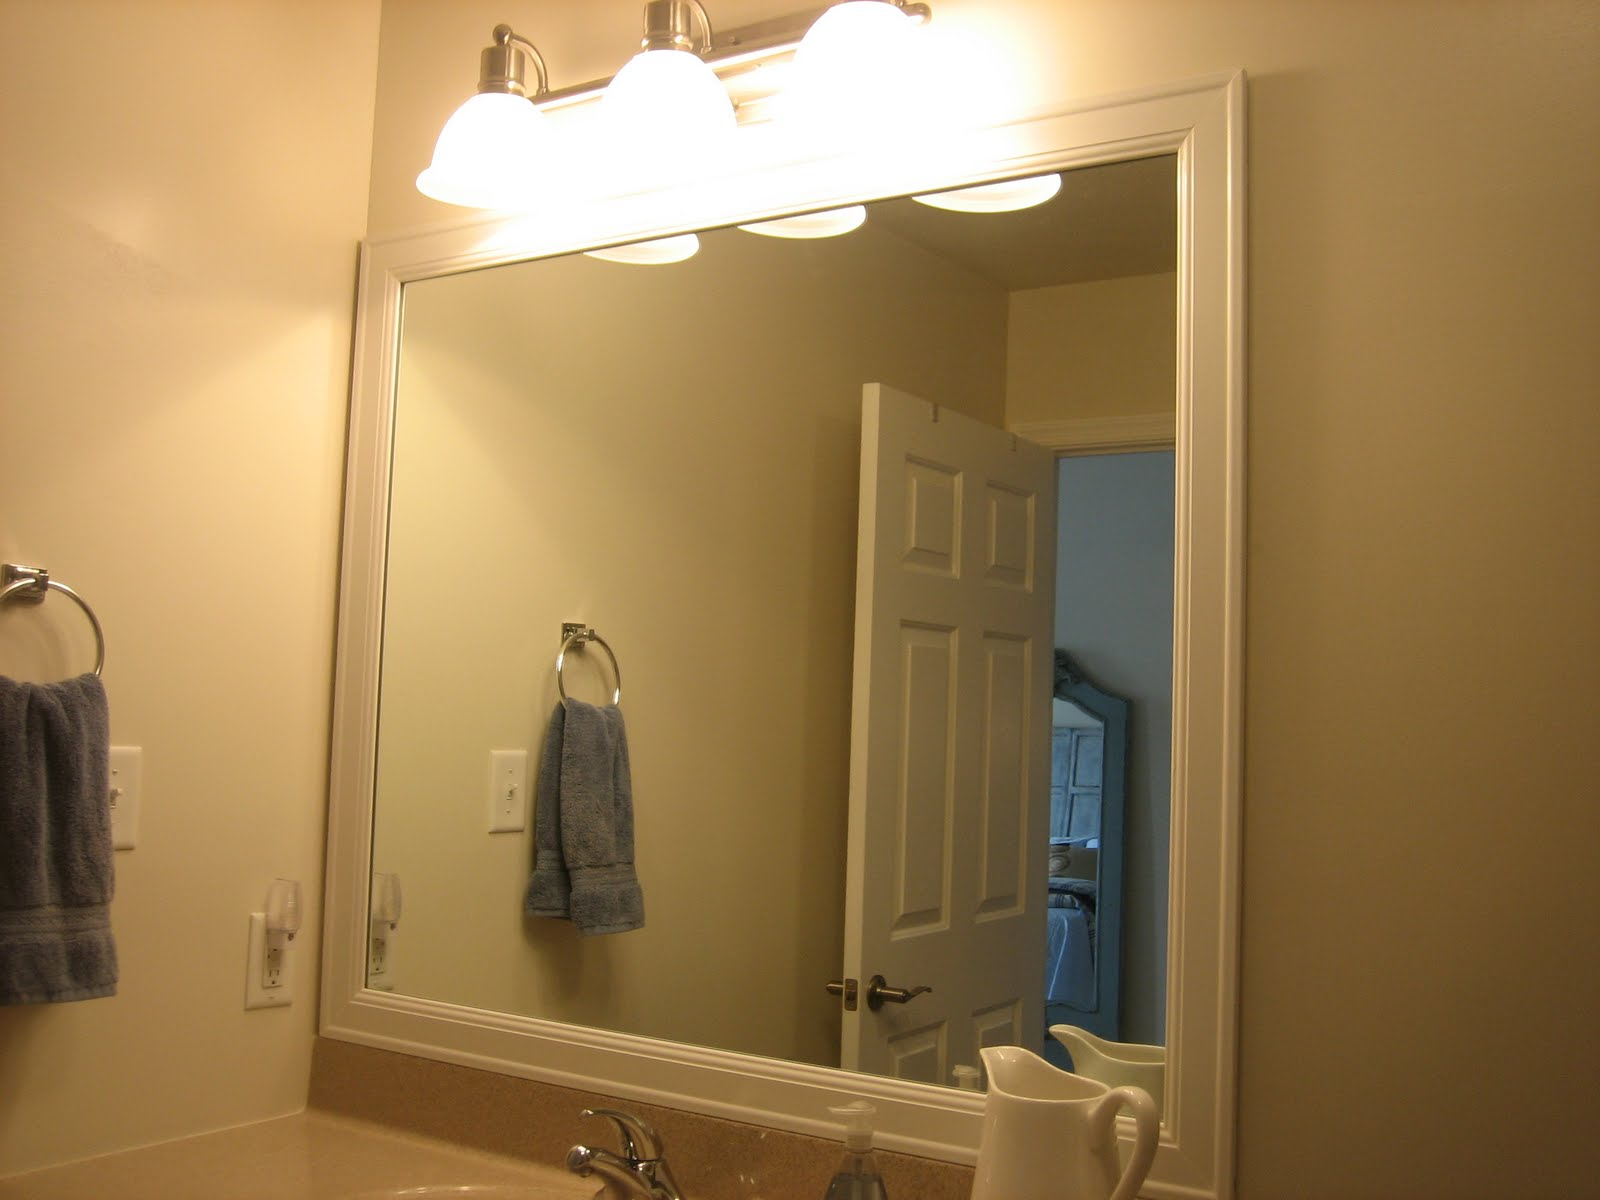 Elizabeth co framing bathroom mirrors for How to frame mirror in bathroom